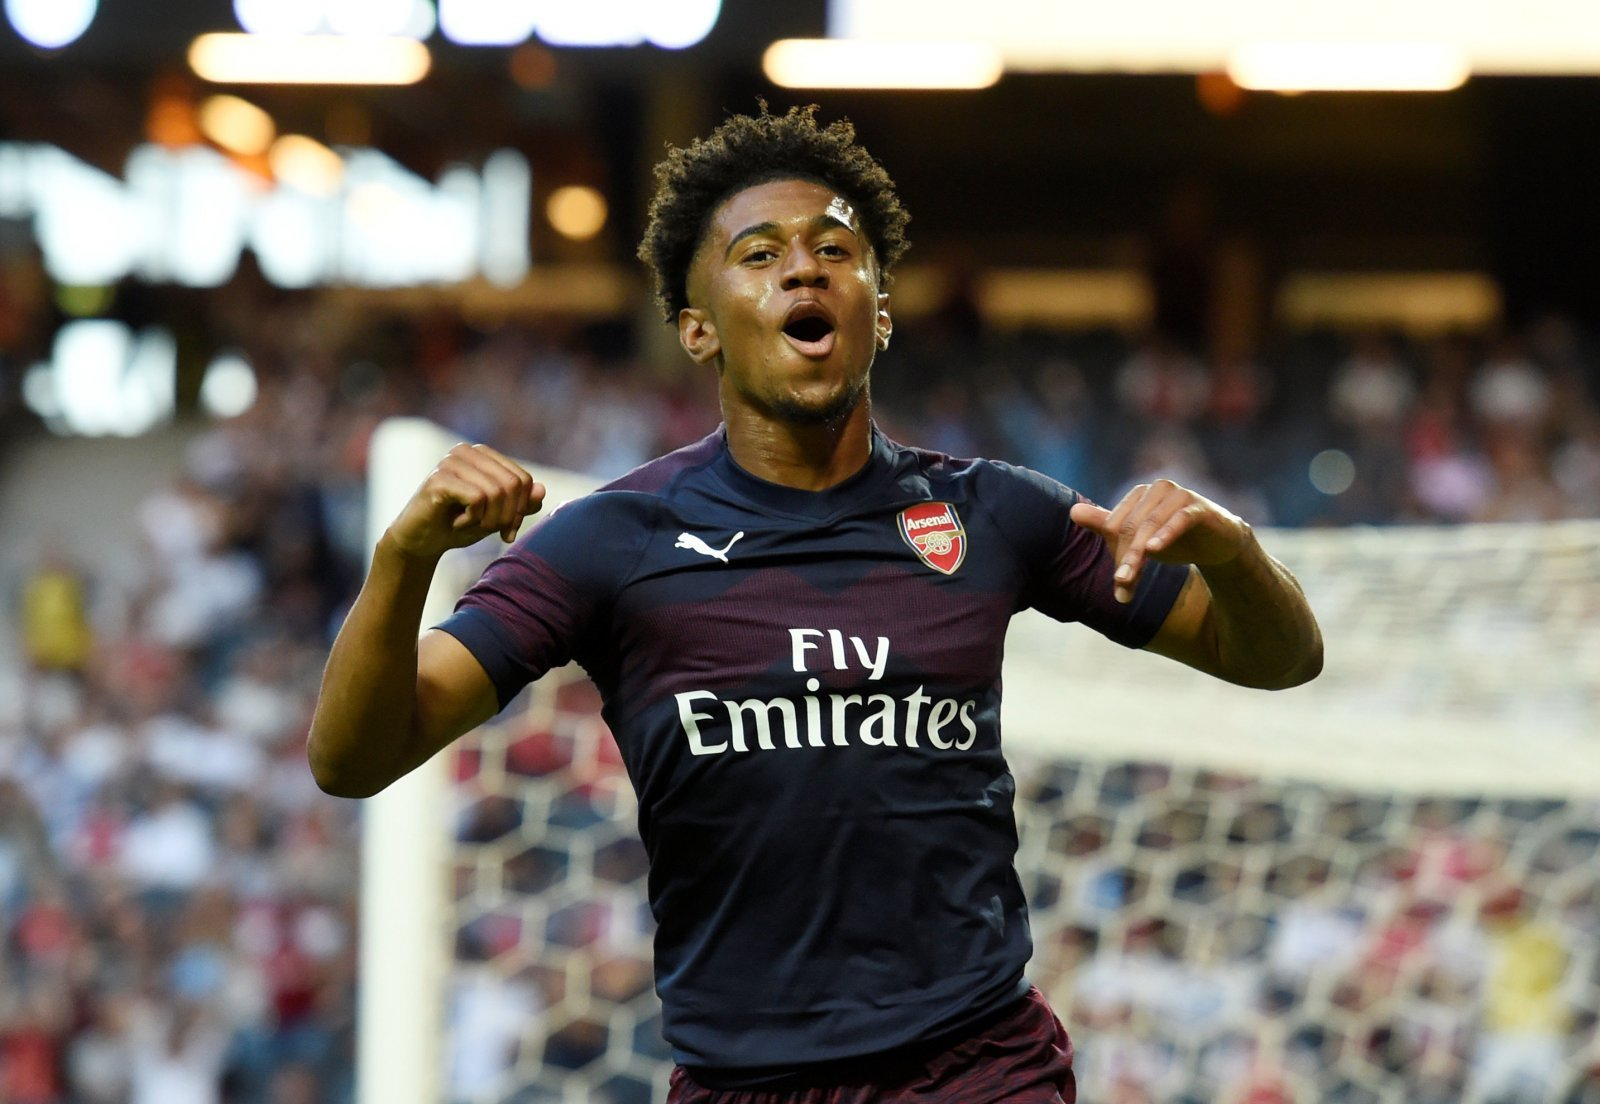 Reiss Nelson's debut goal for Hoffenheim has left Arsenal fans buzzing